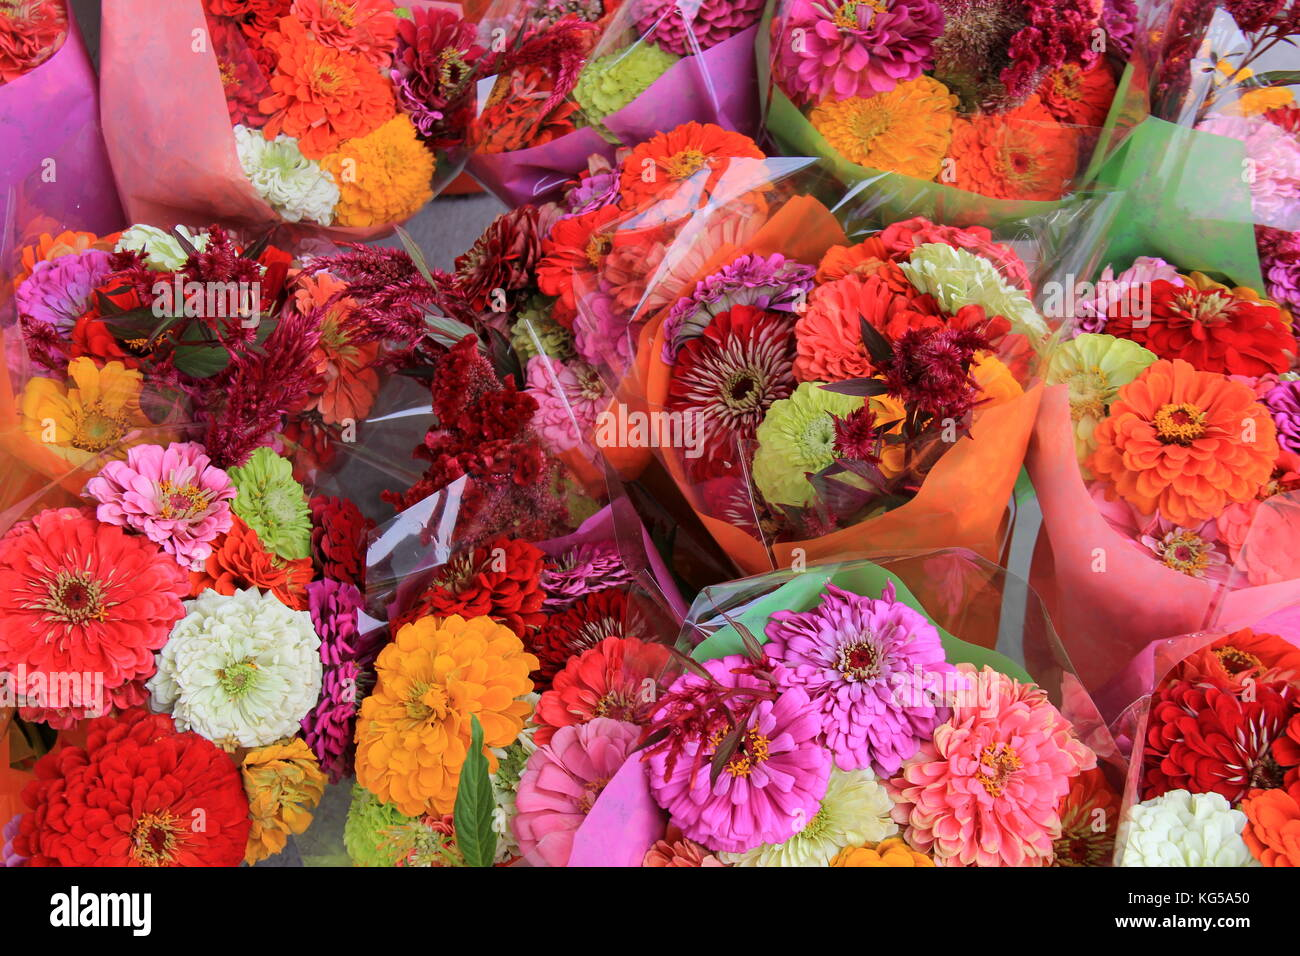 Several Bouquets Of Flowers Wrapped In Cellophane At The Local Stock